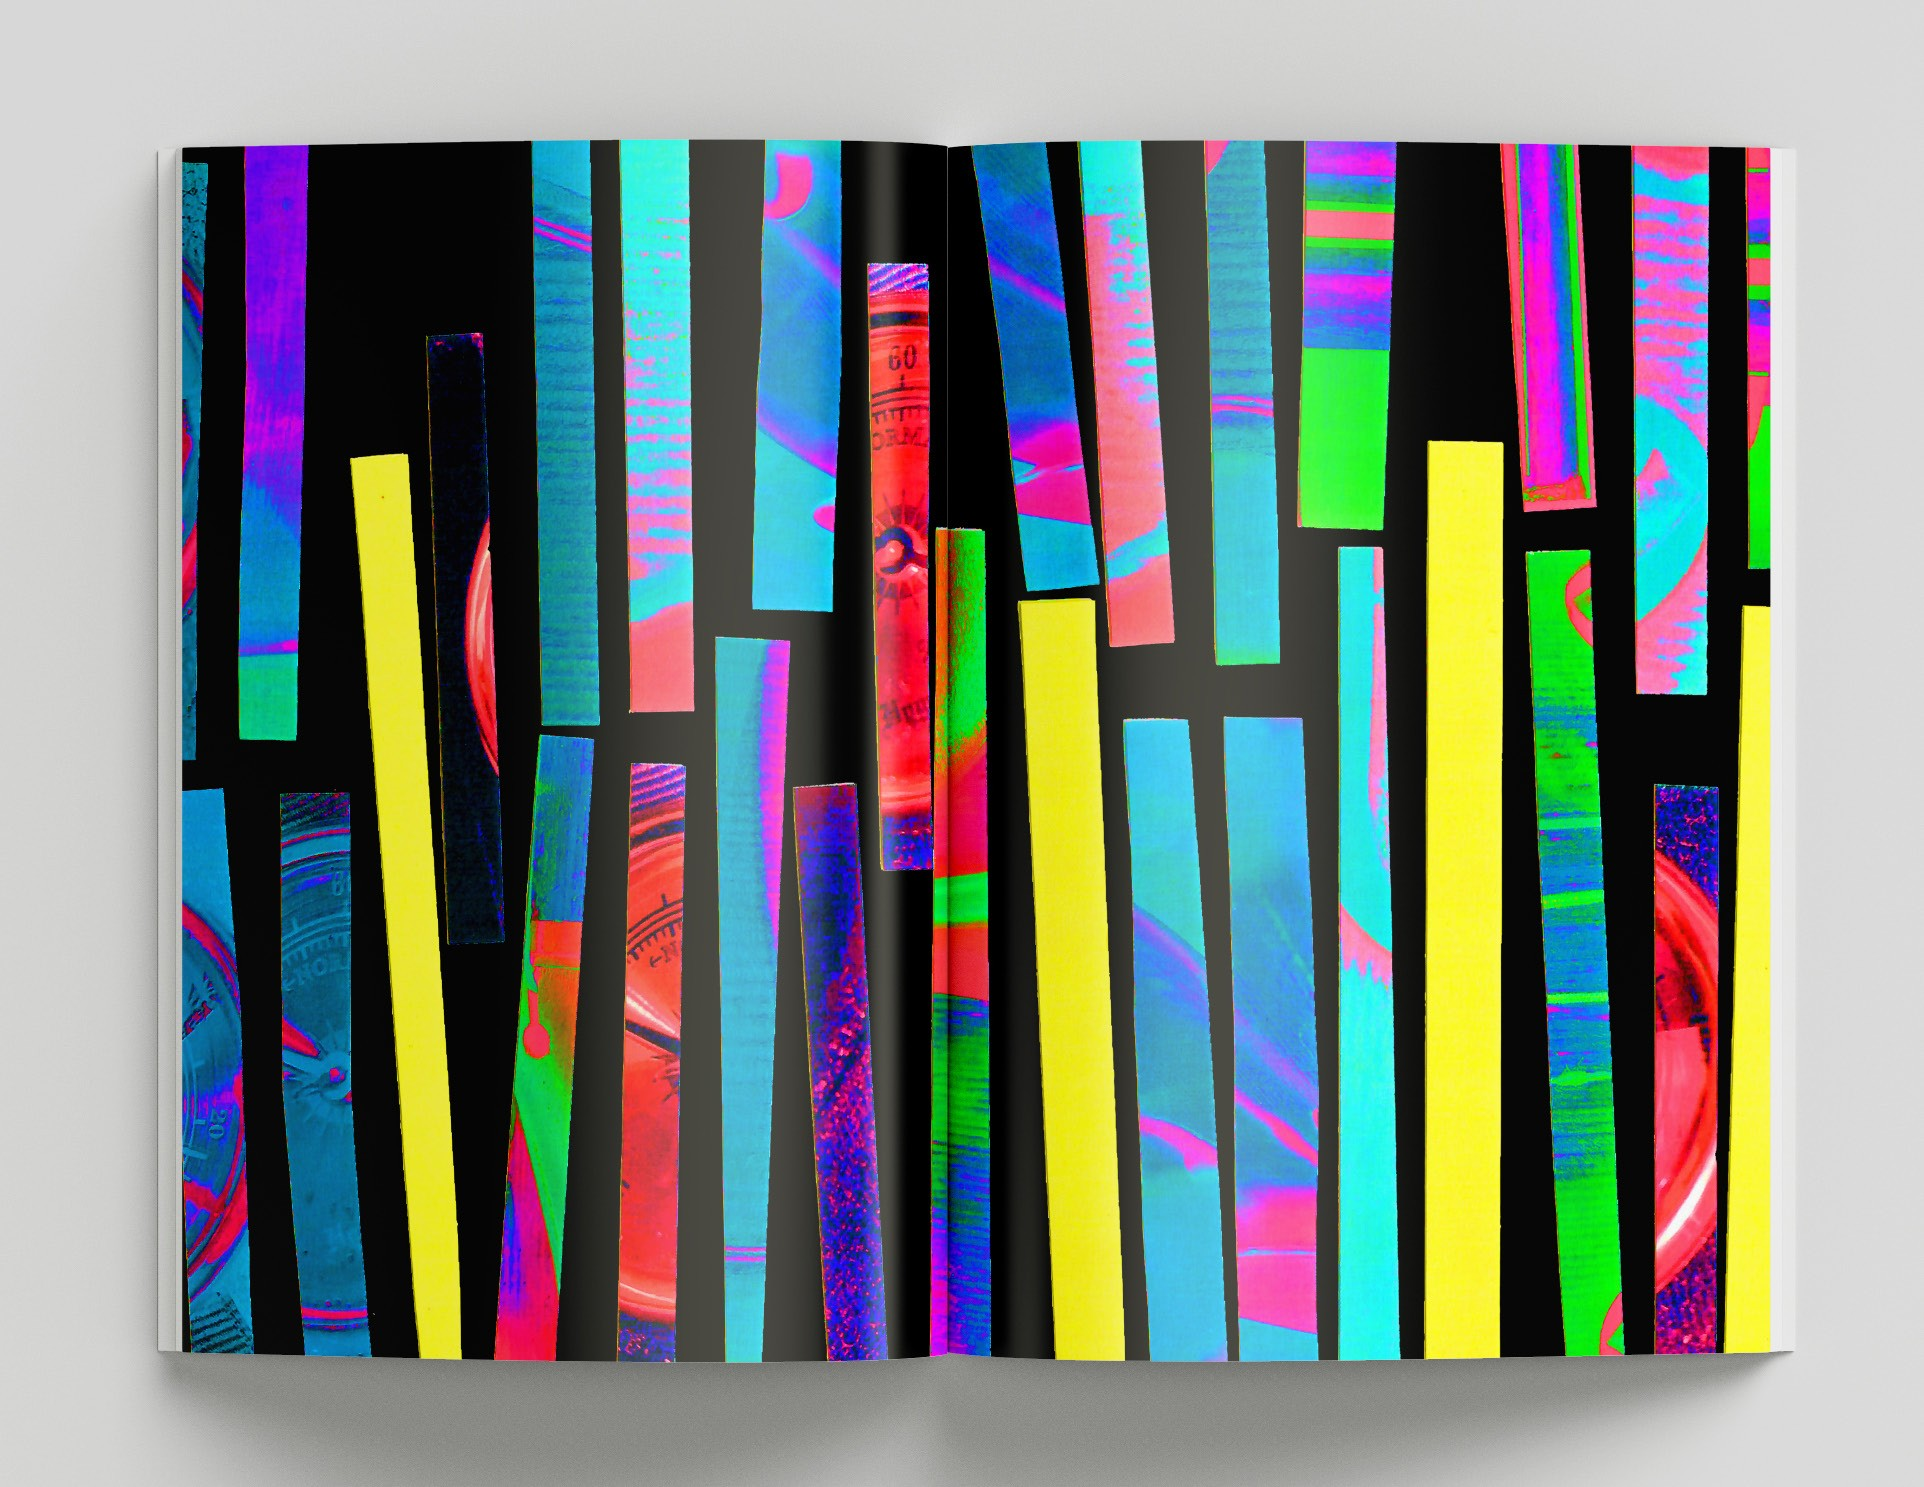 Organized play with abstraction.